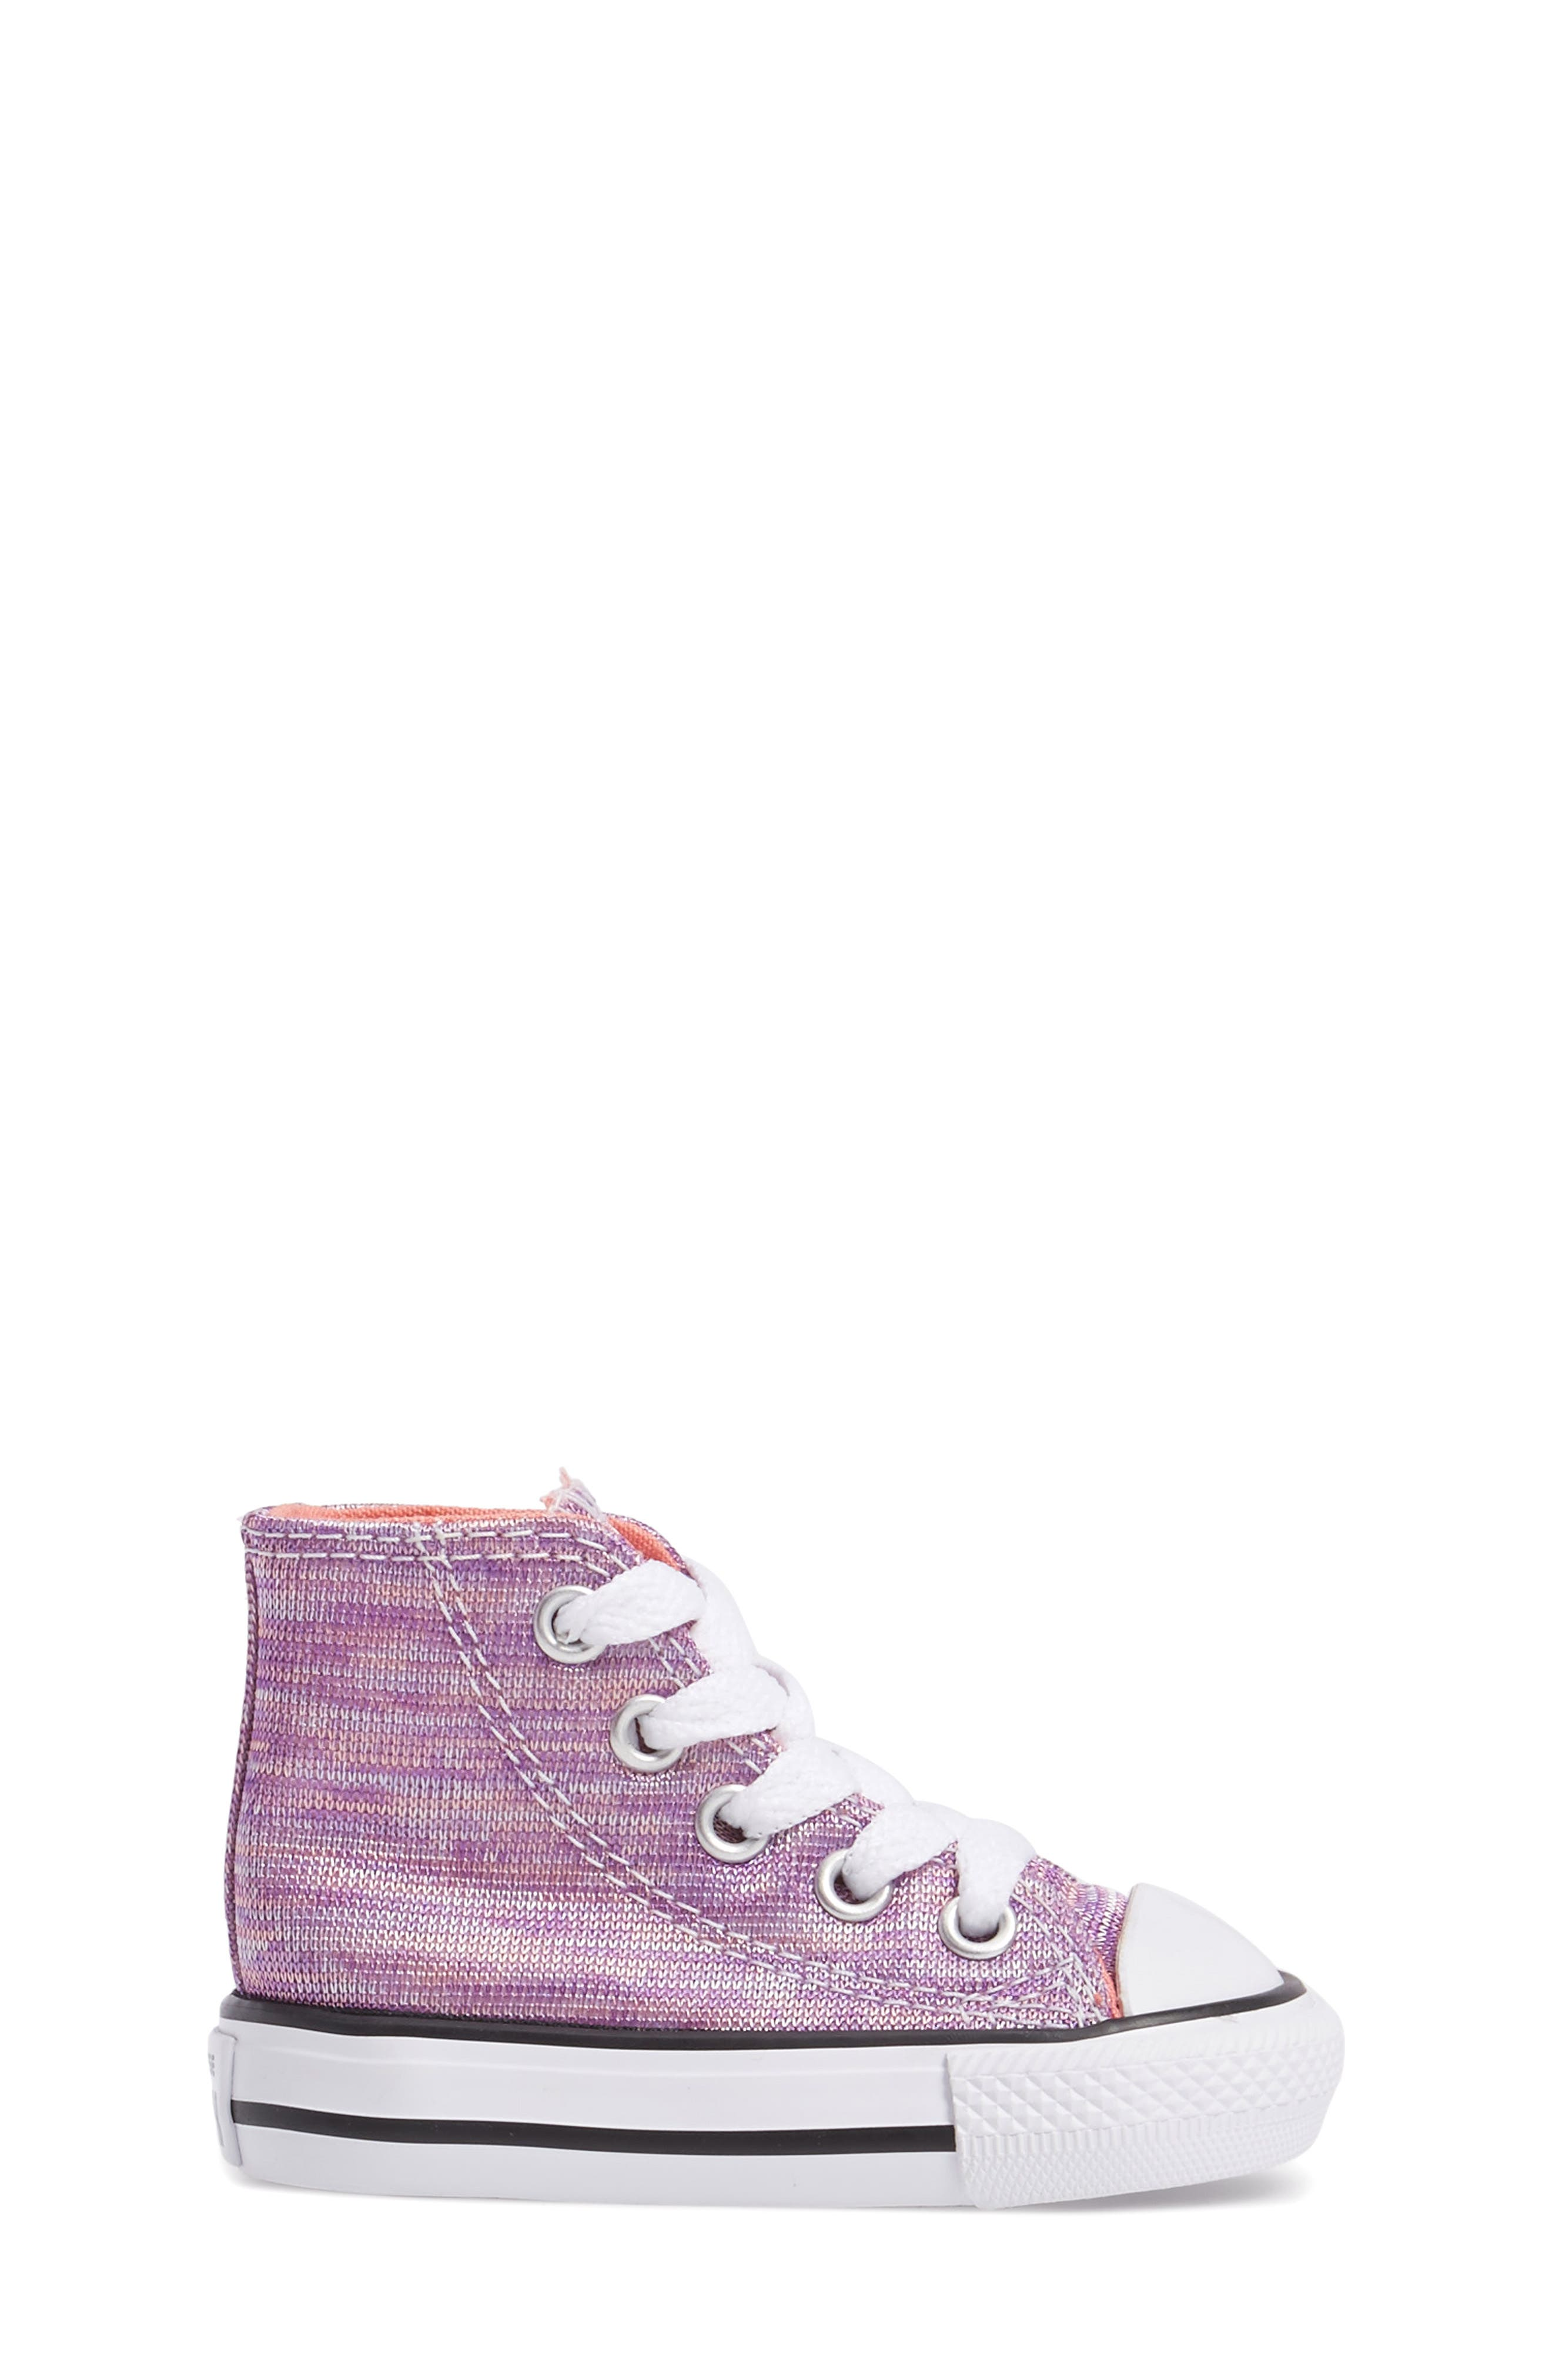 Chuck Taylor<sup>®</sup> All Star<sup>®</sup> Knit High Top Sneaker,                             Alternate thumbnail 3, color,                             Bright Violet Textile